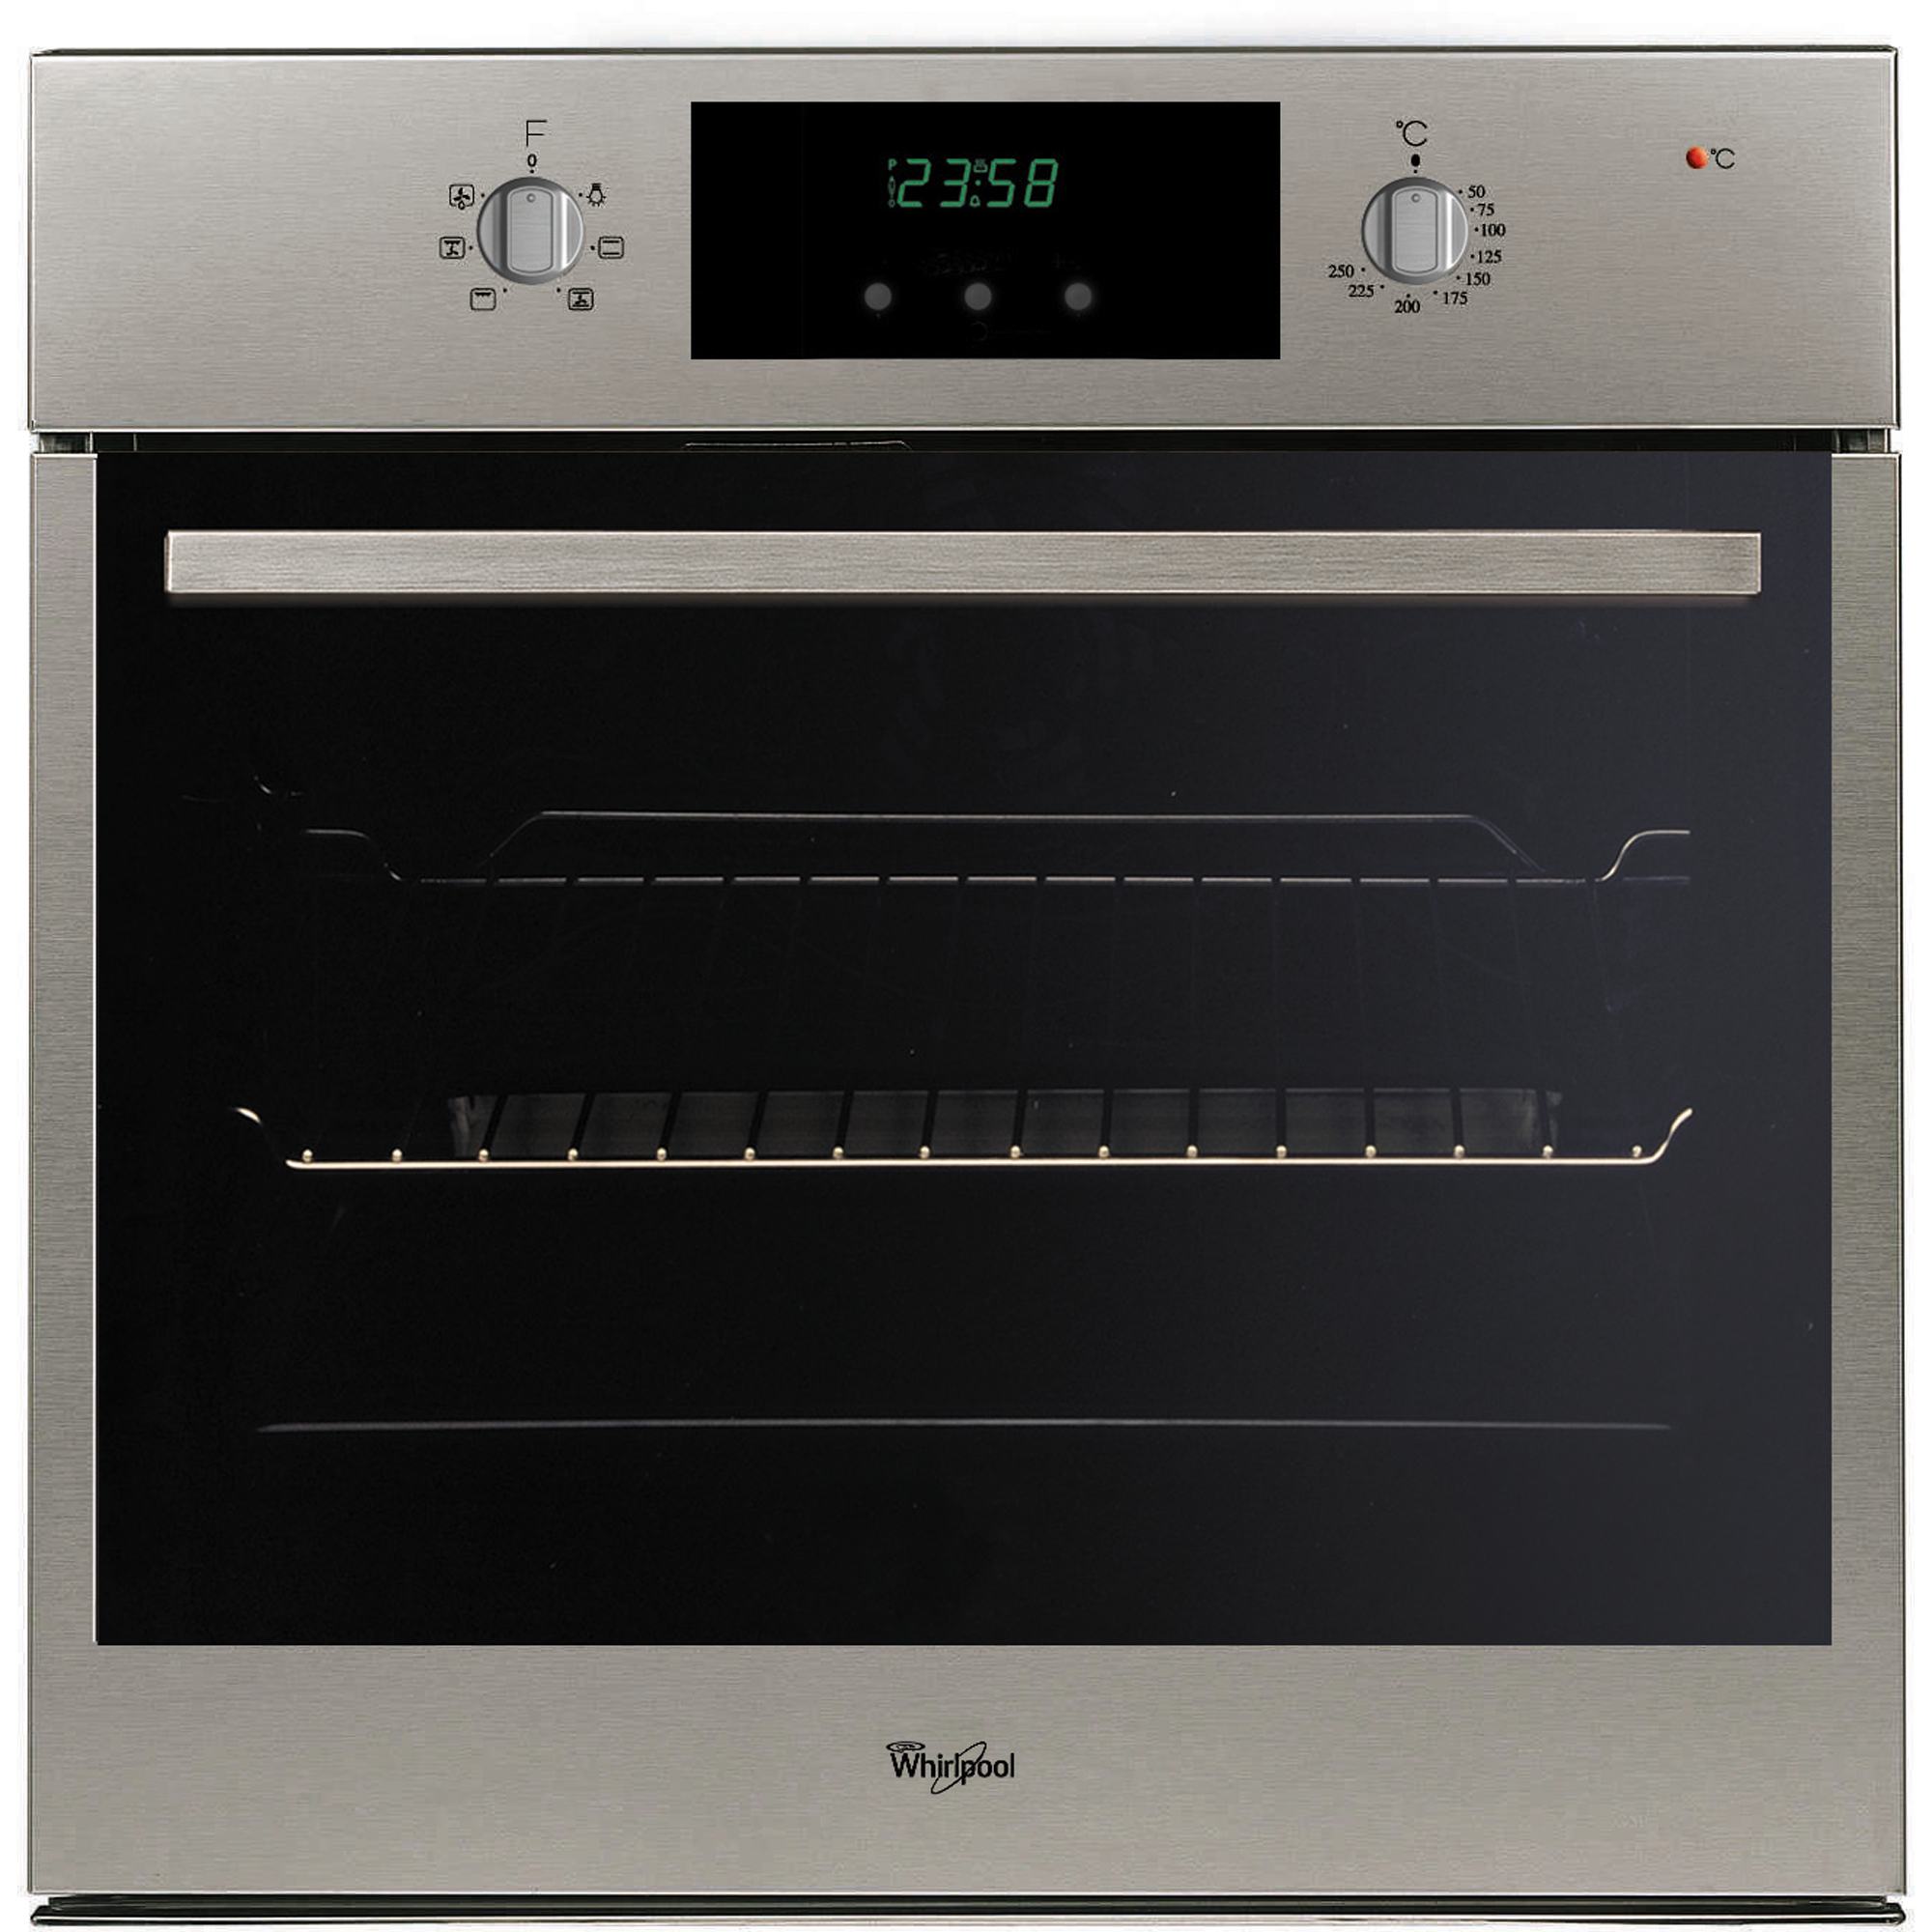 Whirlpool Oven Whirlpool Oven Reviews